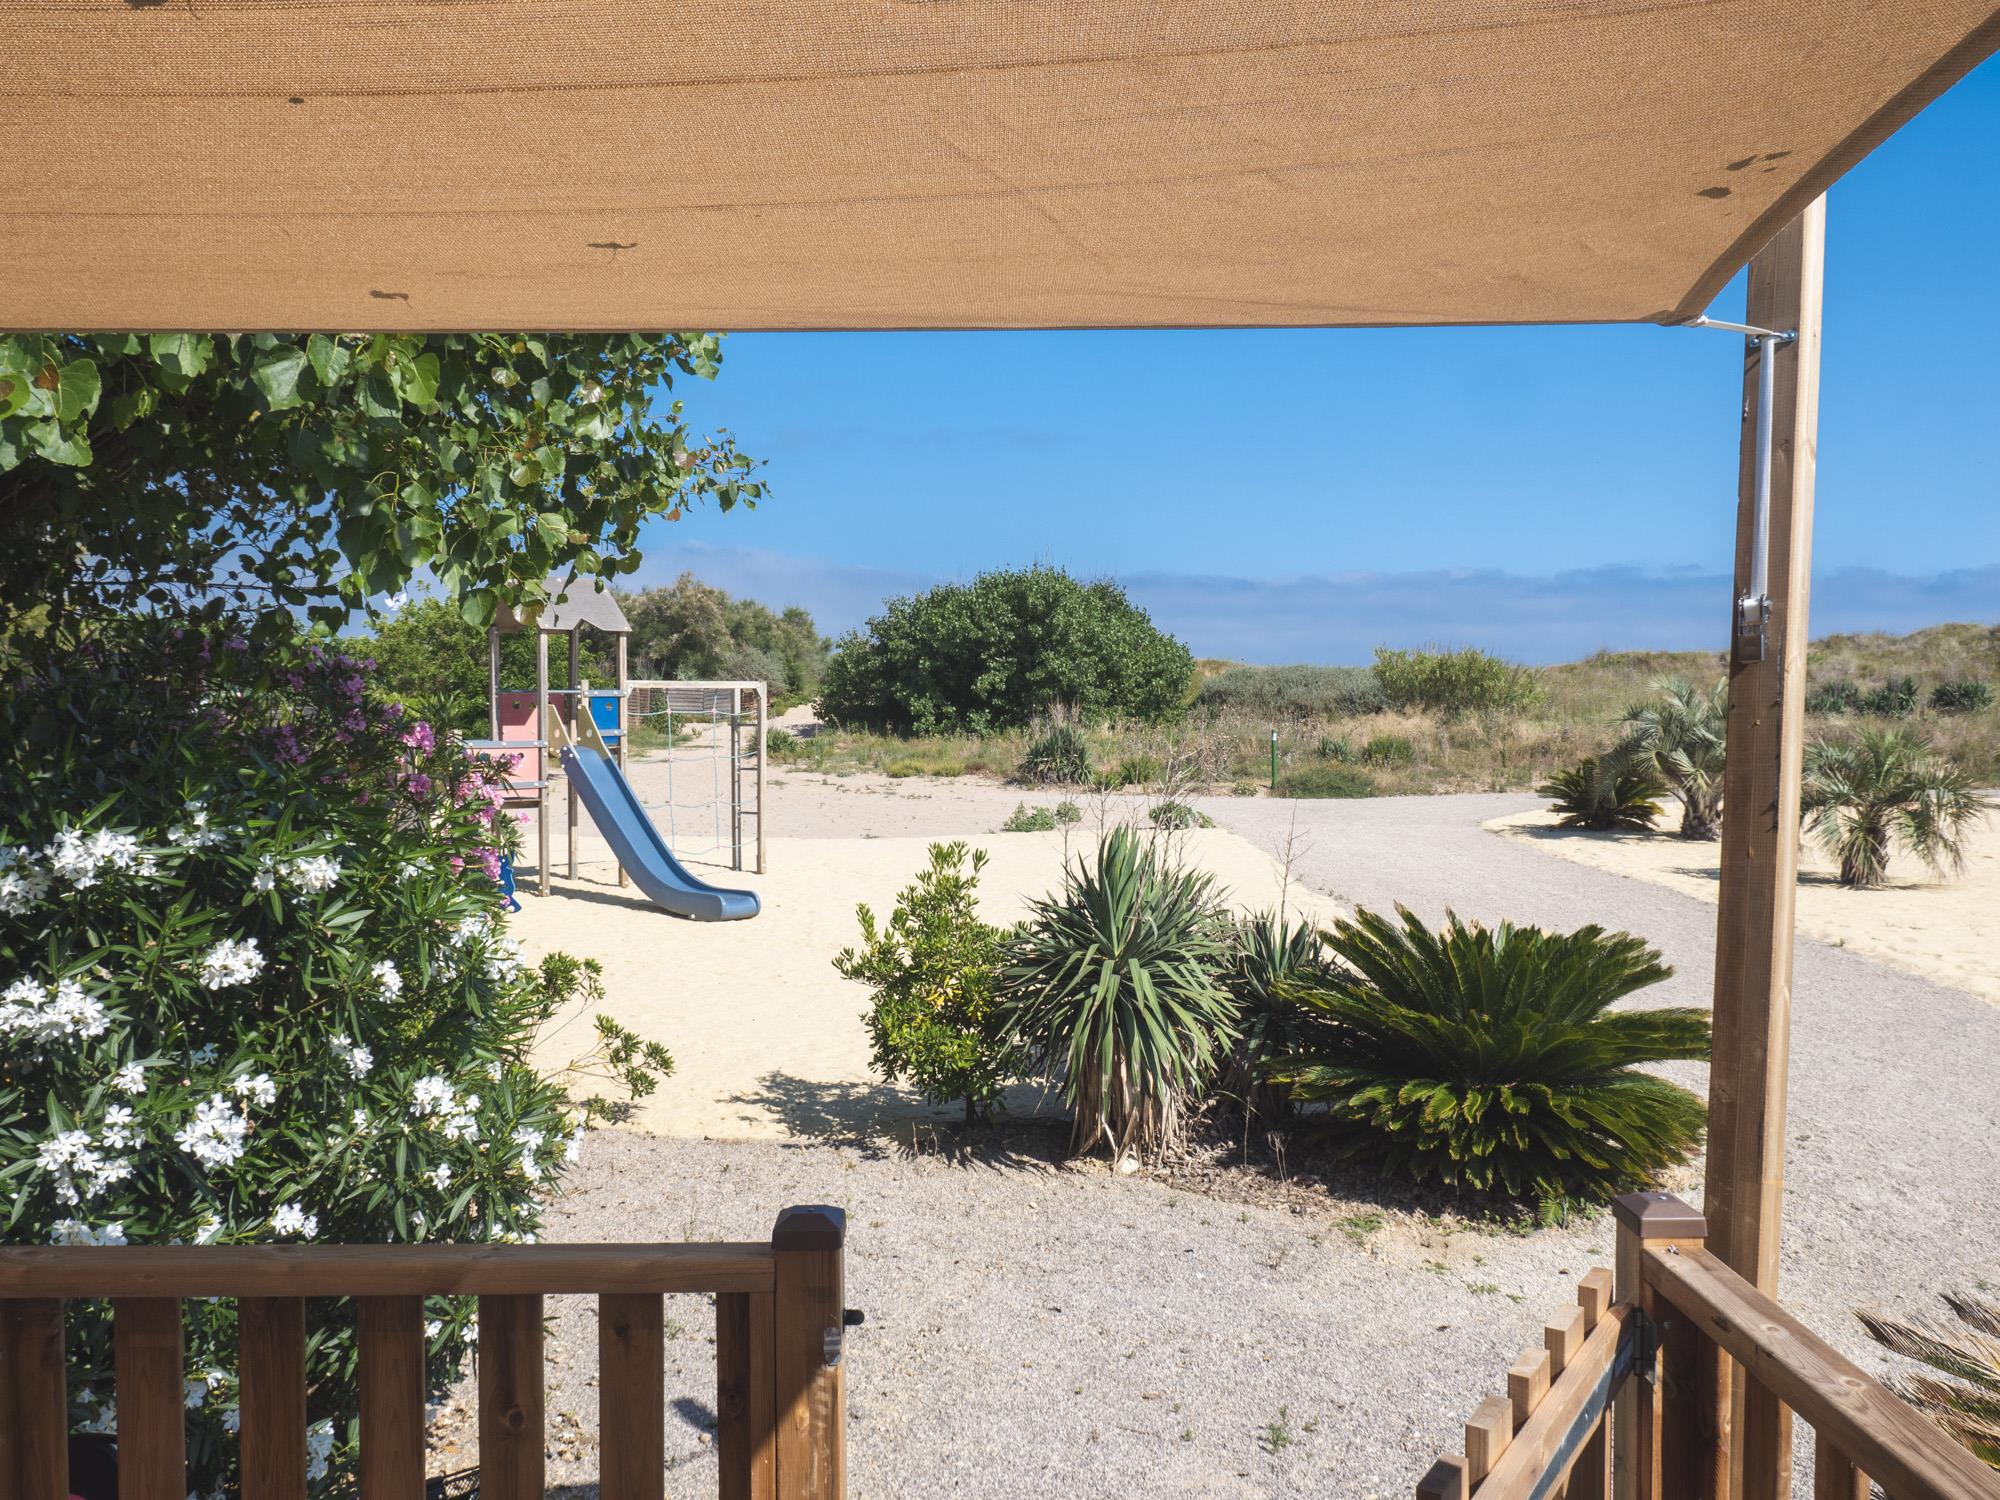 Accommodation - Dune Nature 7 Pers 3 Bdrm 33M² - Air Con - Camping Le Serignan Plage Nature